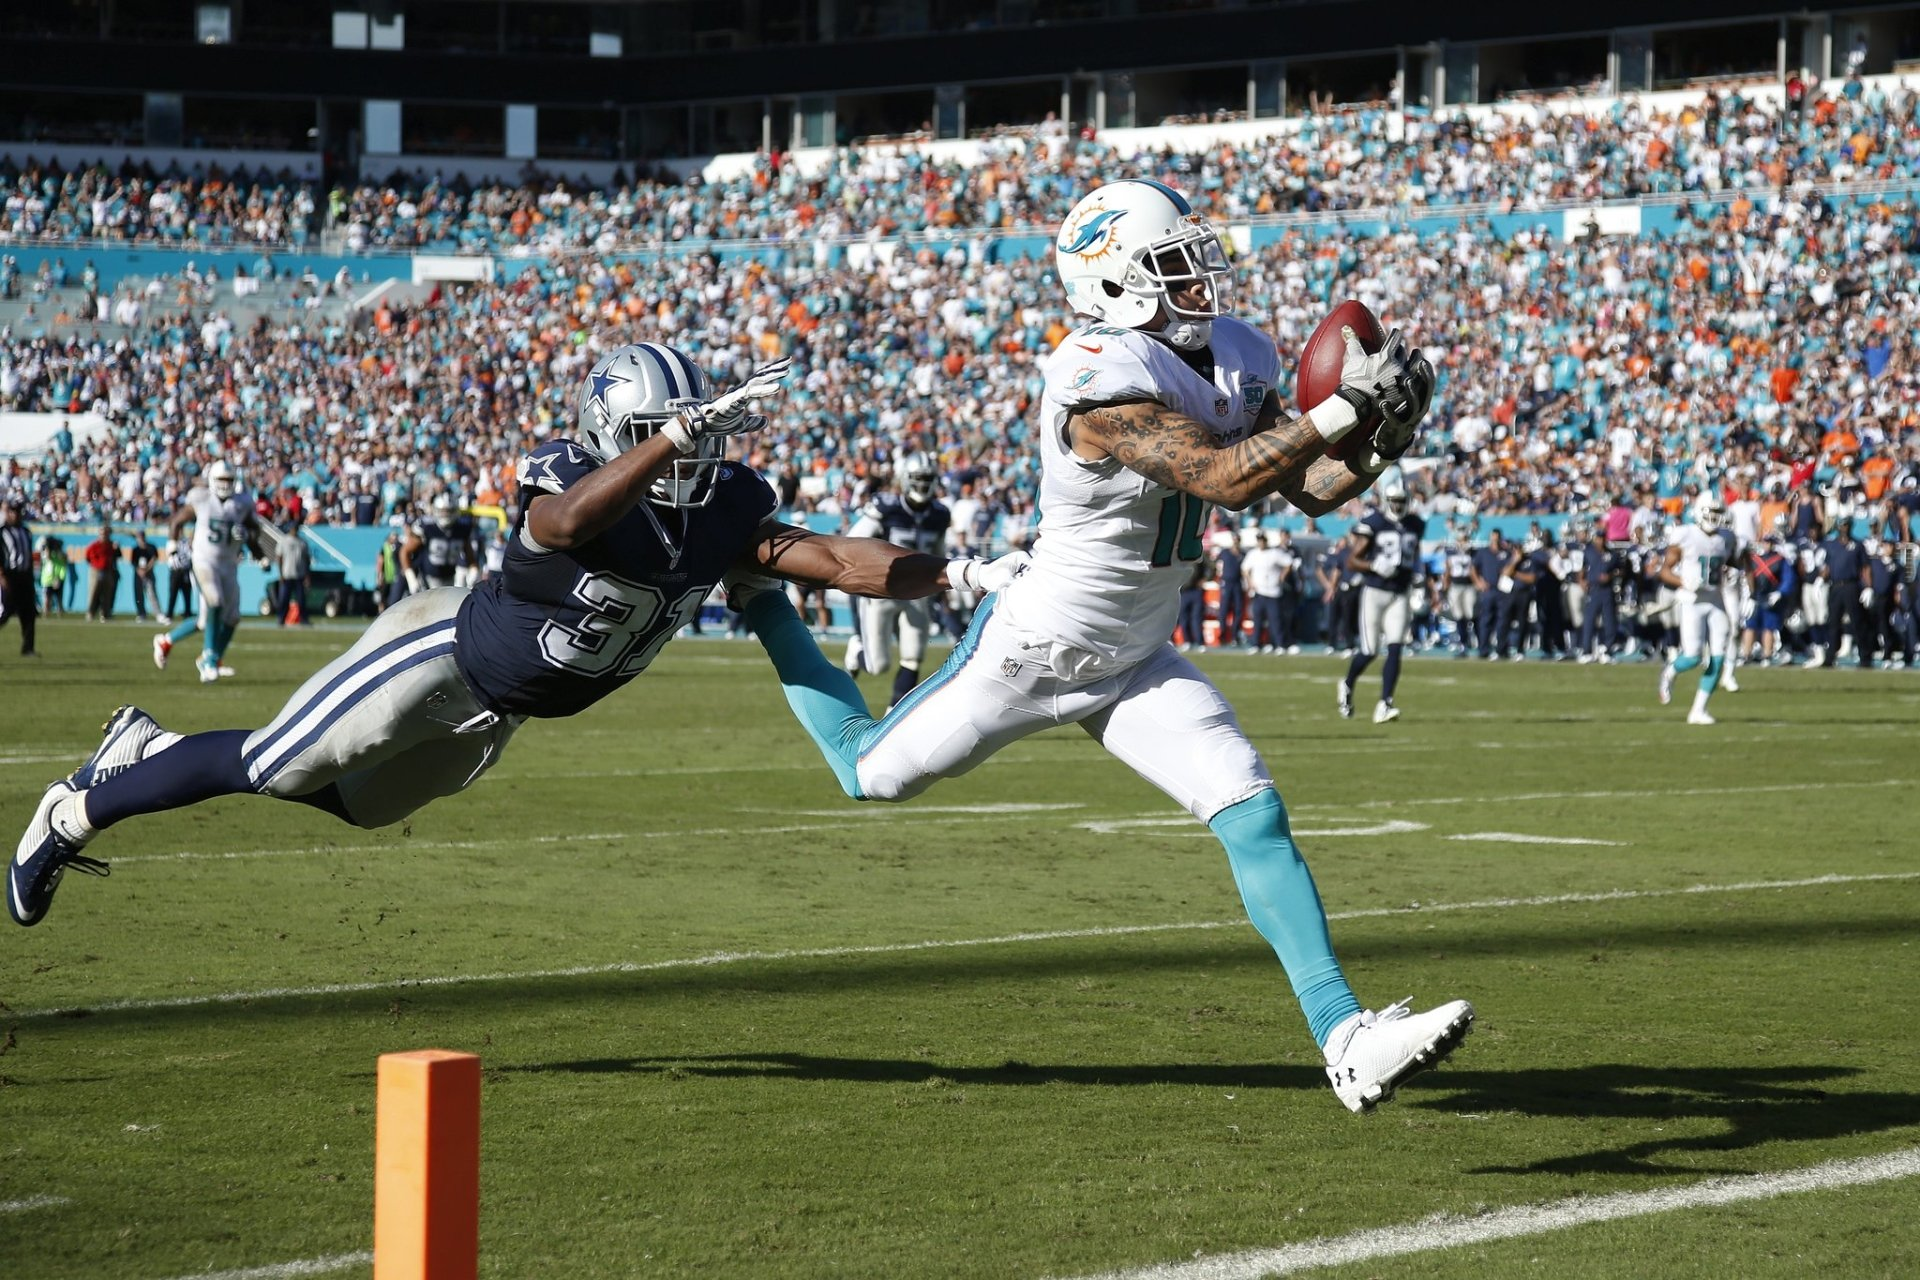 Miami dolphins full hd wallpaper and background image - Wallpaper stills ...